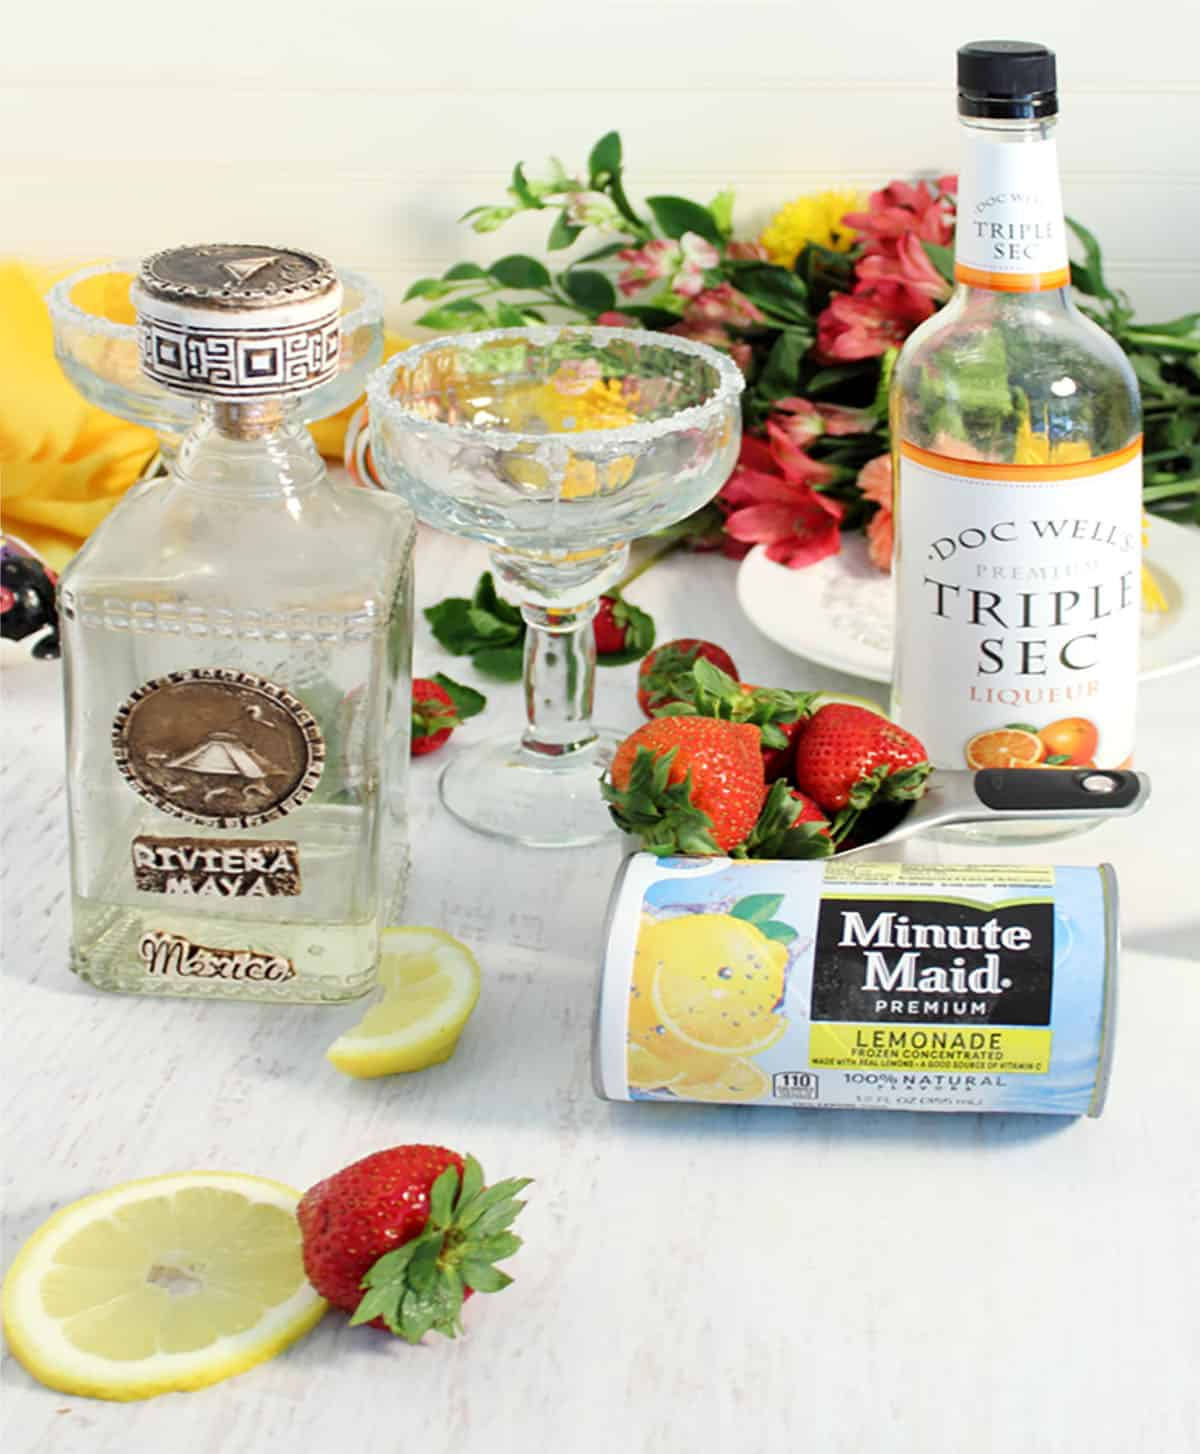 Ingredients for margarita on white table with flowers in background.